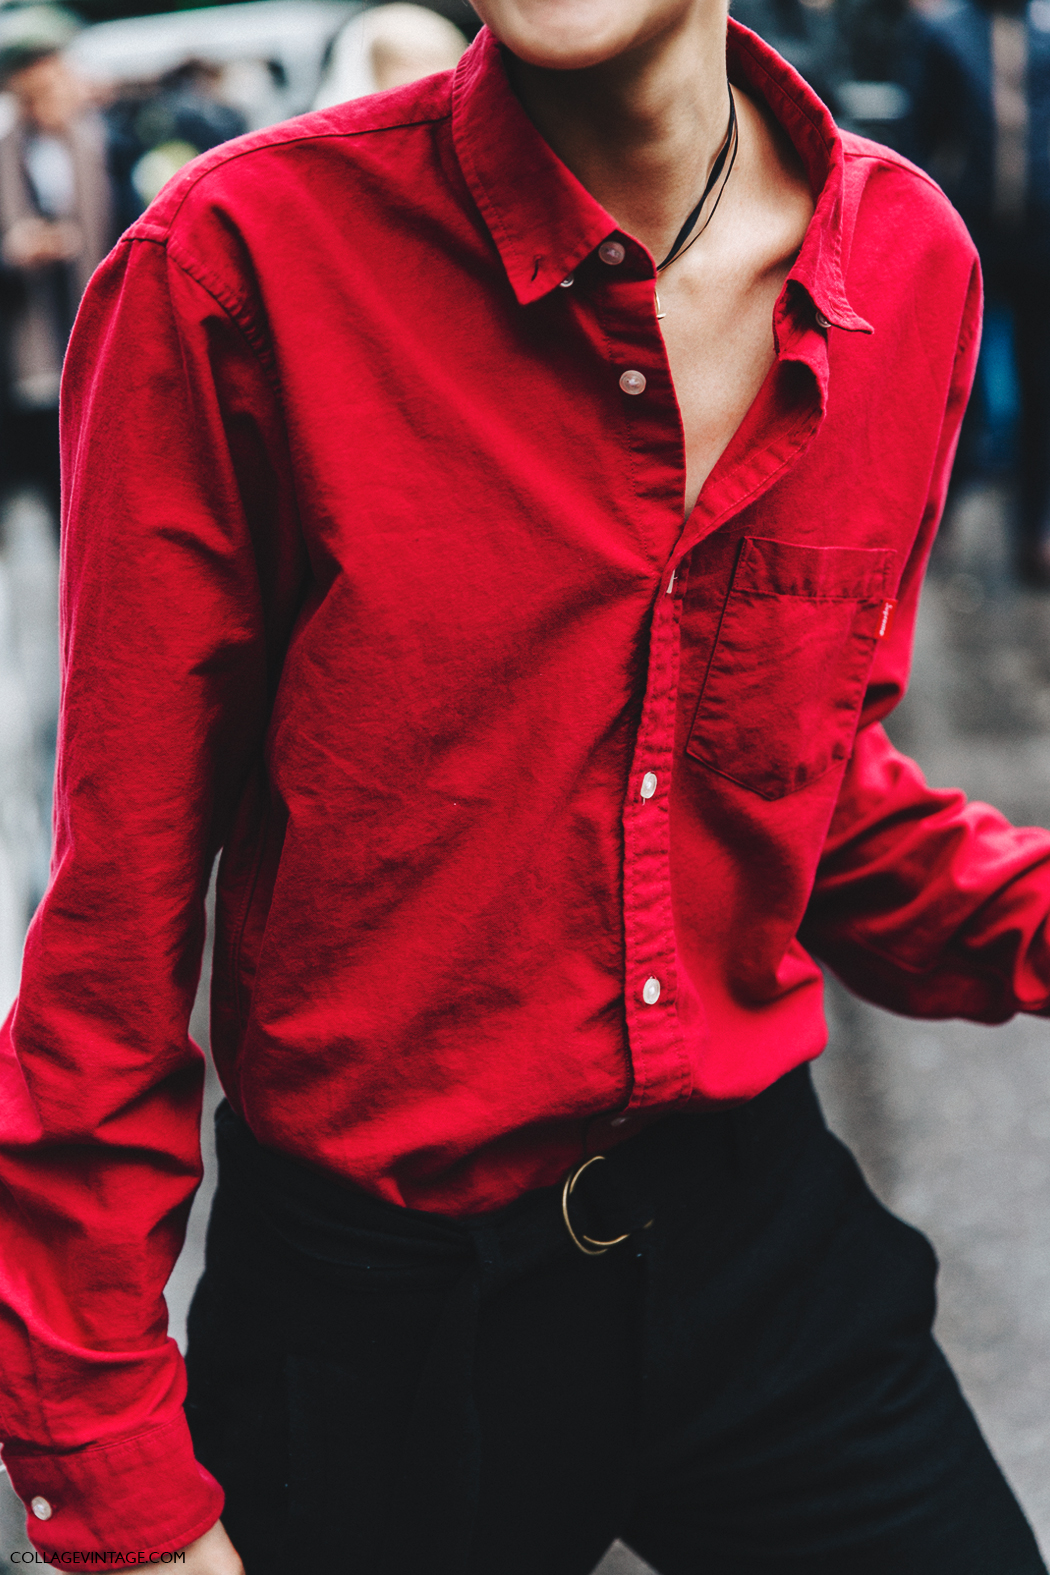 Milan_Fashion_Week_Fall_16-MFW-Street_Style-Collage_Vintage-Red_Shirt-